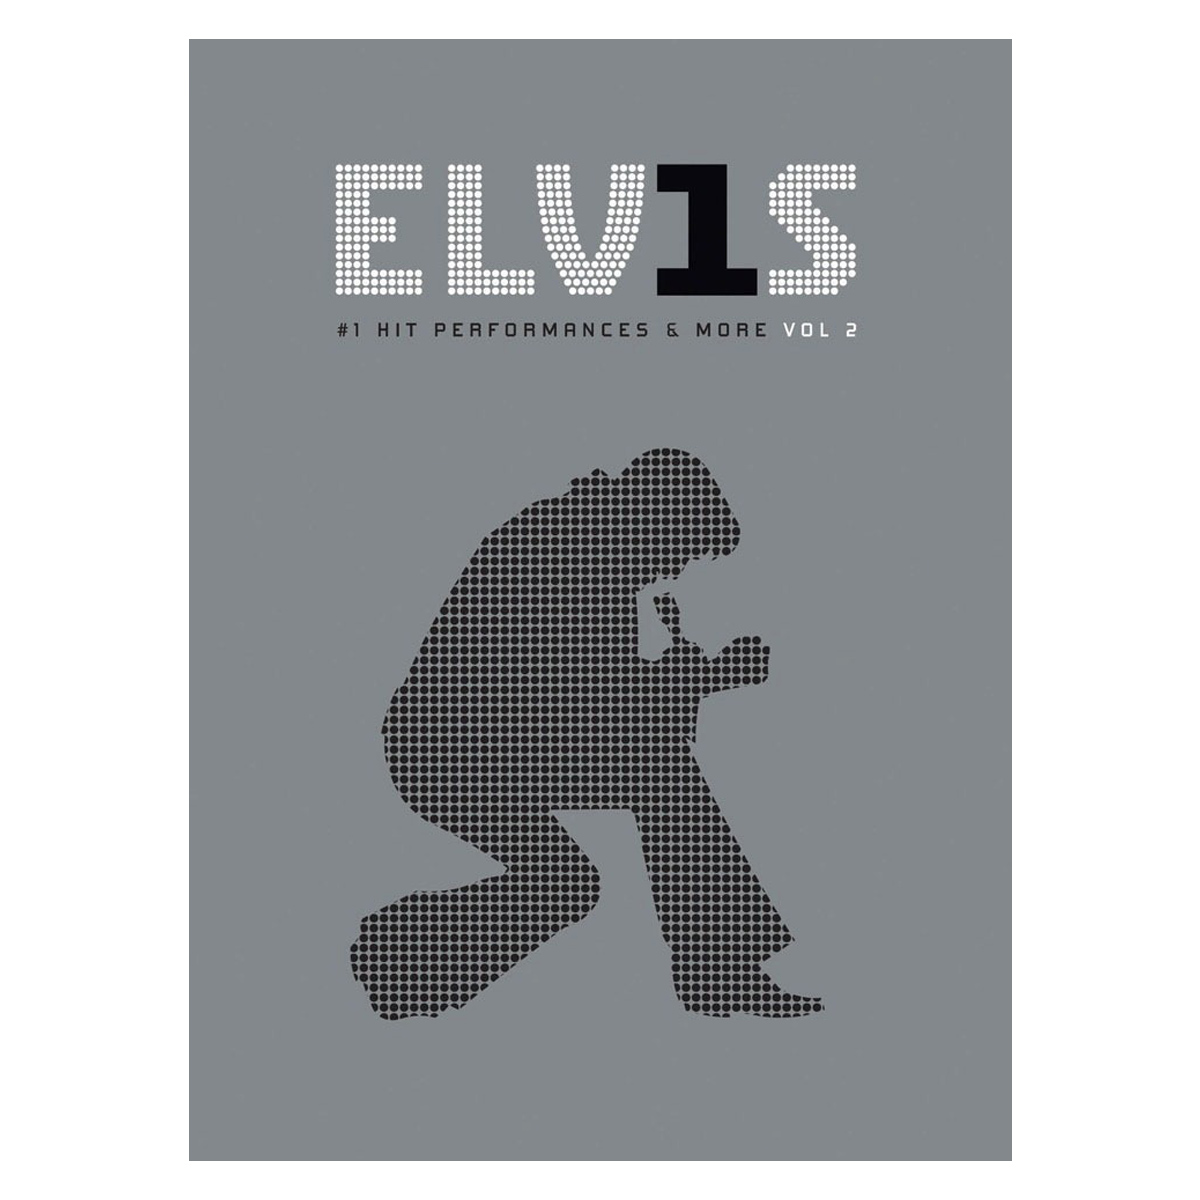 DVD Elvis - #1 Hit Performances And More Vol 2